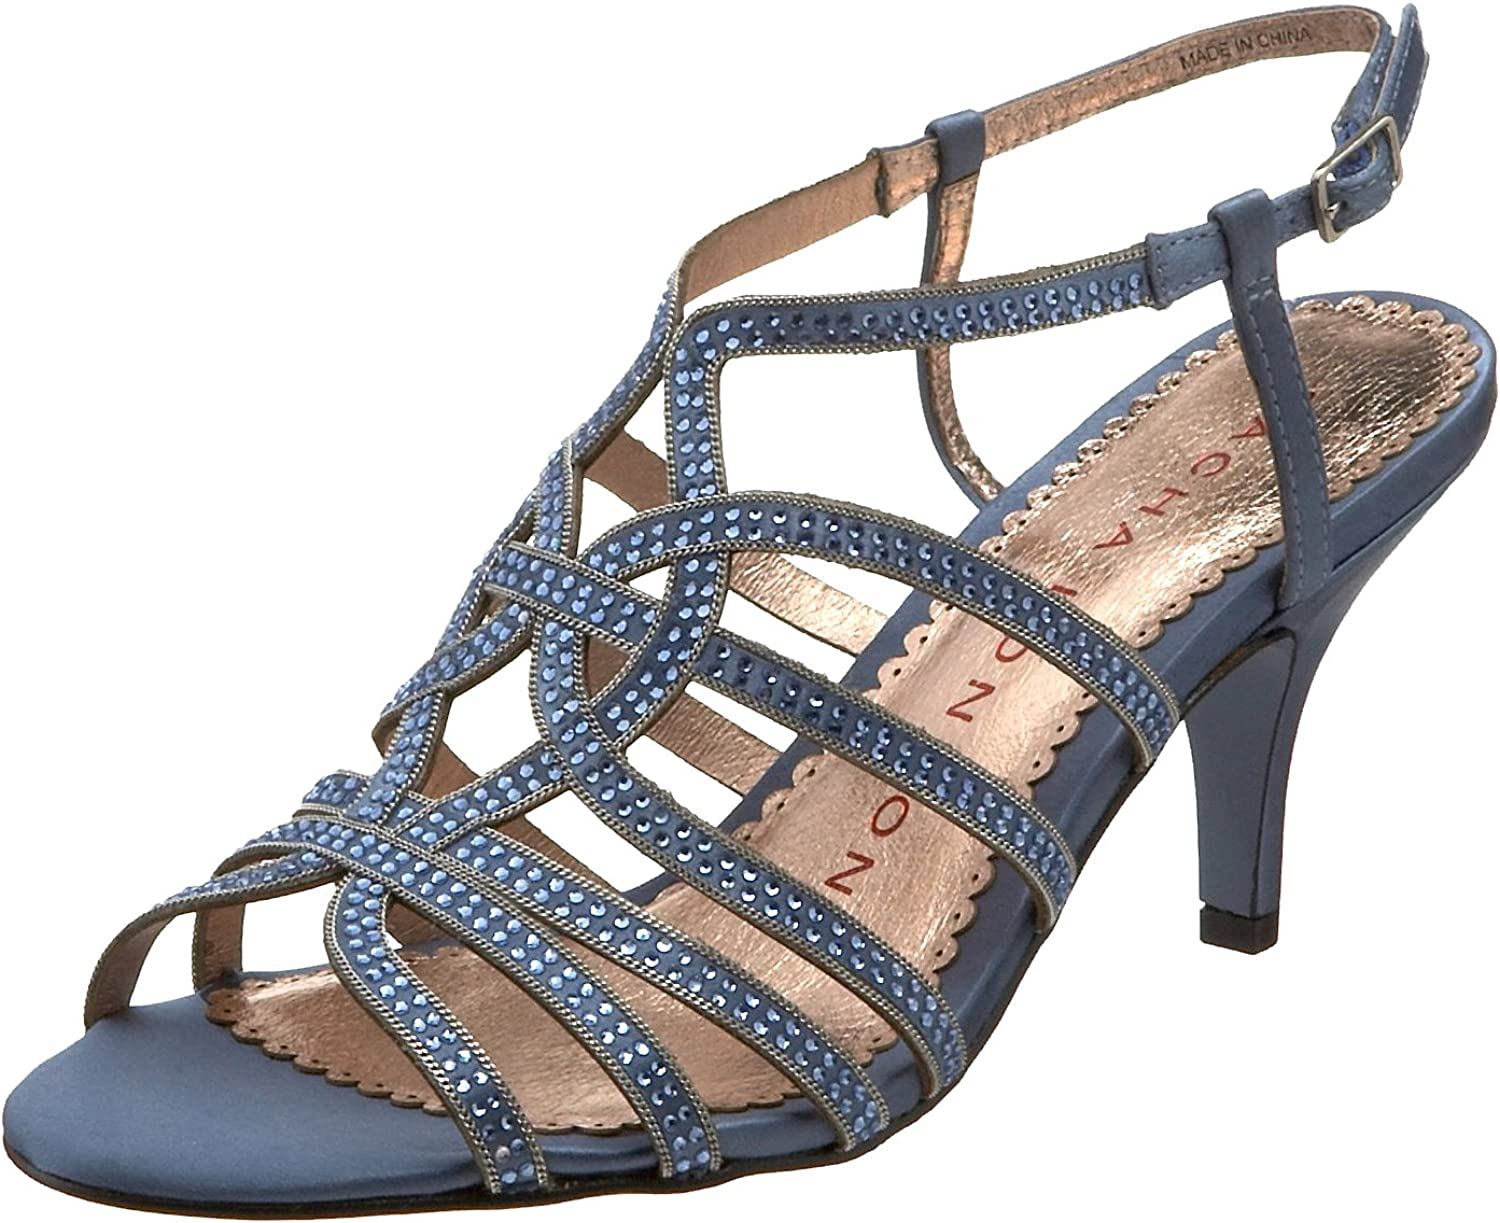 Sacha London Women's Finalie Ankle-Strap Sandal